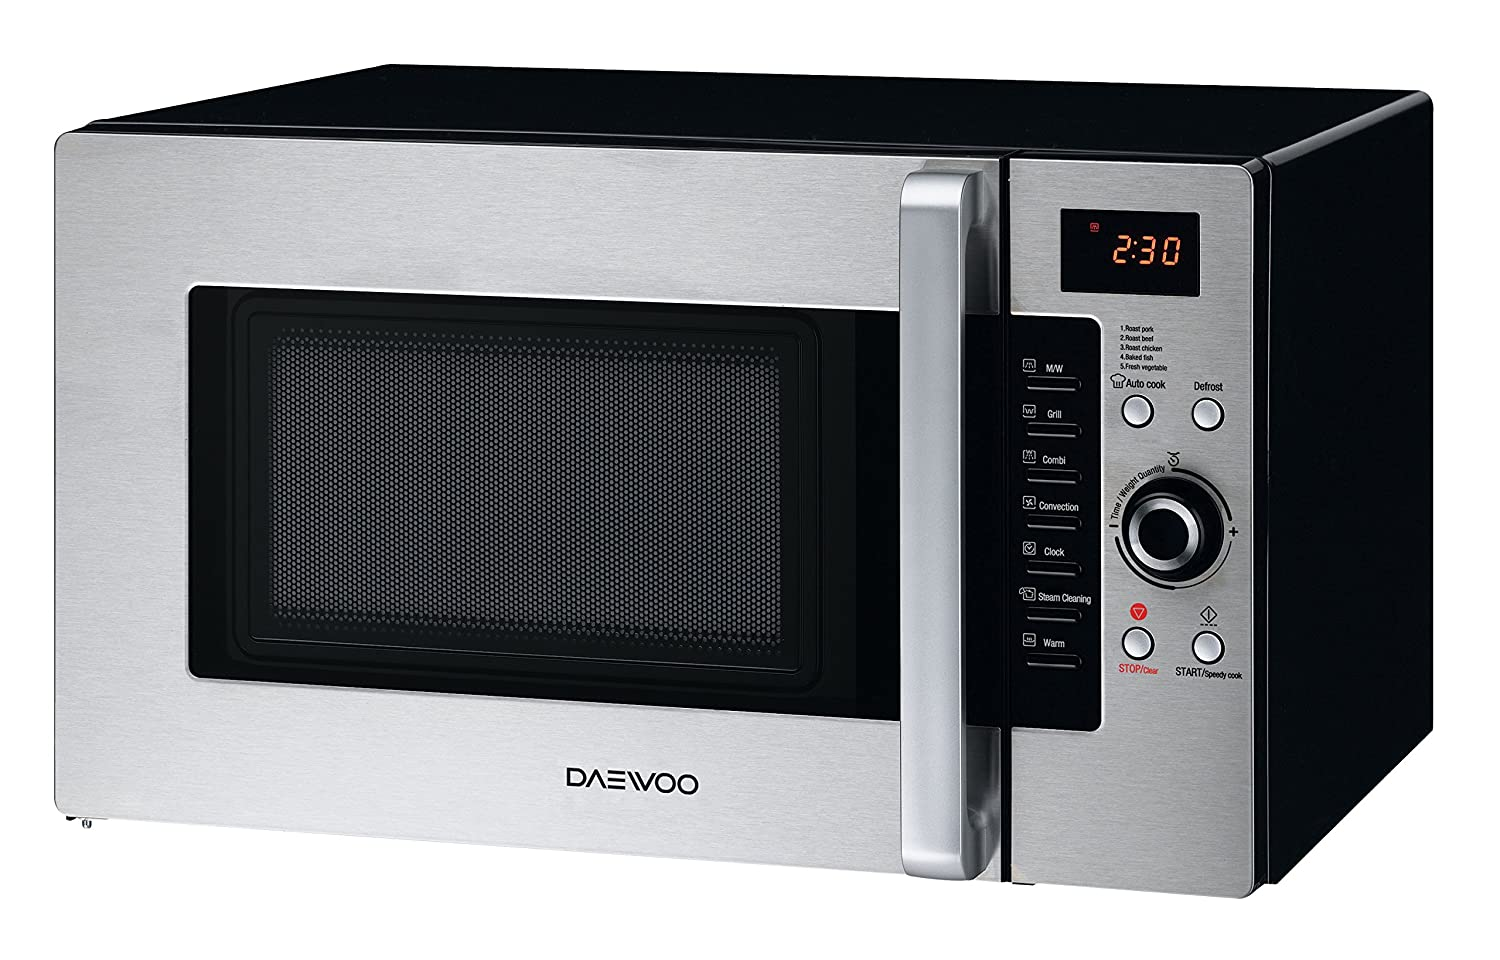 Amazon.com: Daewoo KOC-9Q4DS Convection Microwave Oven 1.0 Cu. Ft., 900W |  Stainless Steel: Cell Phones & Accessories